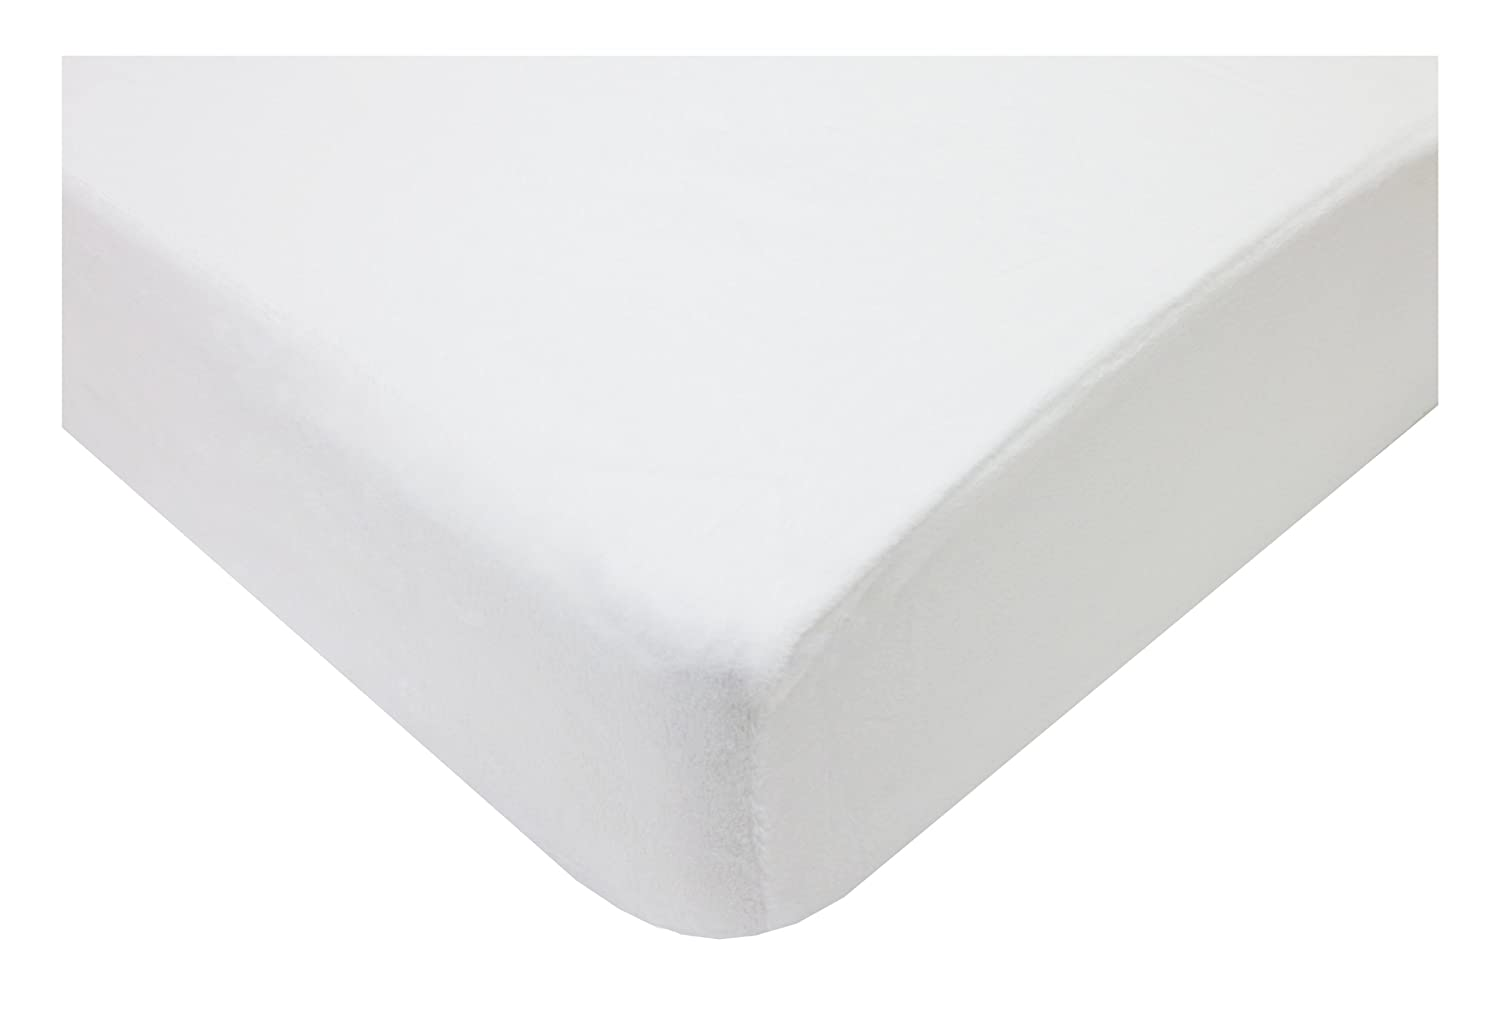 American Baby Company 4550-WT Heavenly Soft Chenille Crib Sheet (White)